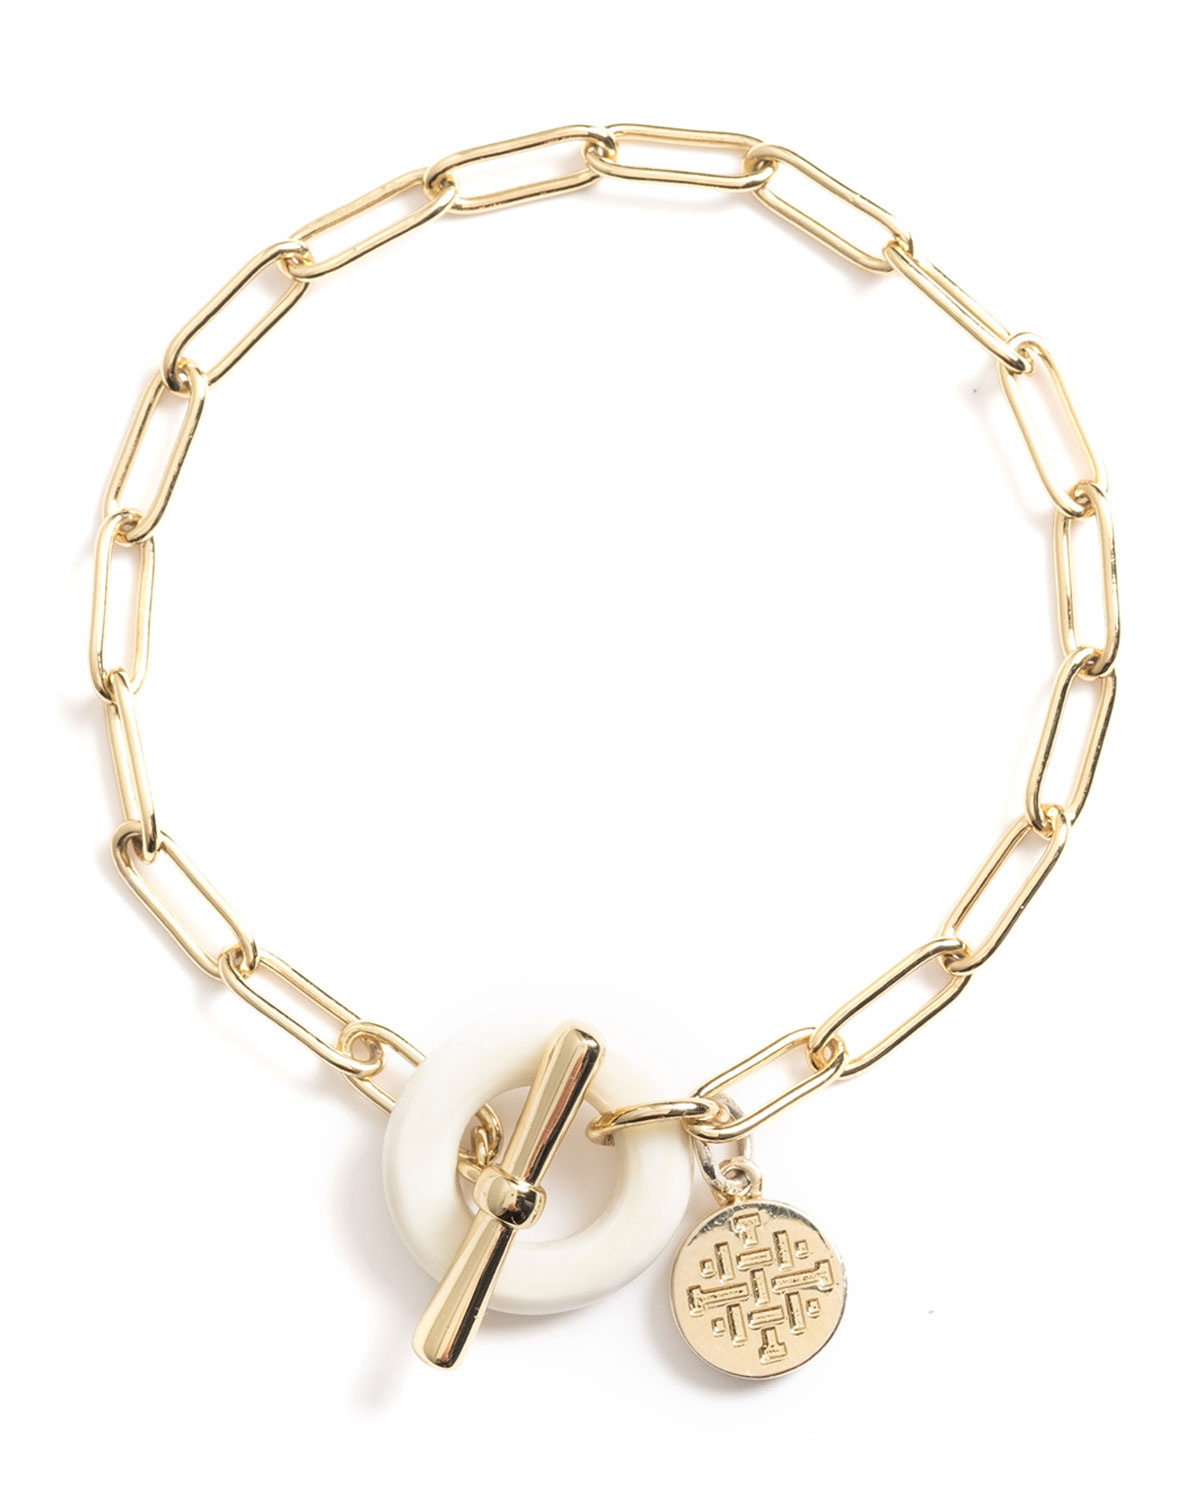 Clover Paperclip Chain Toggle Bracelet